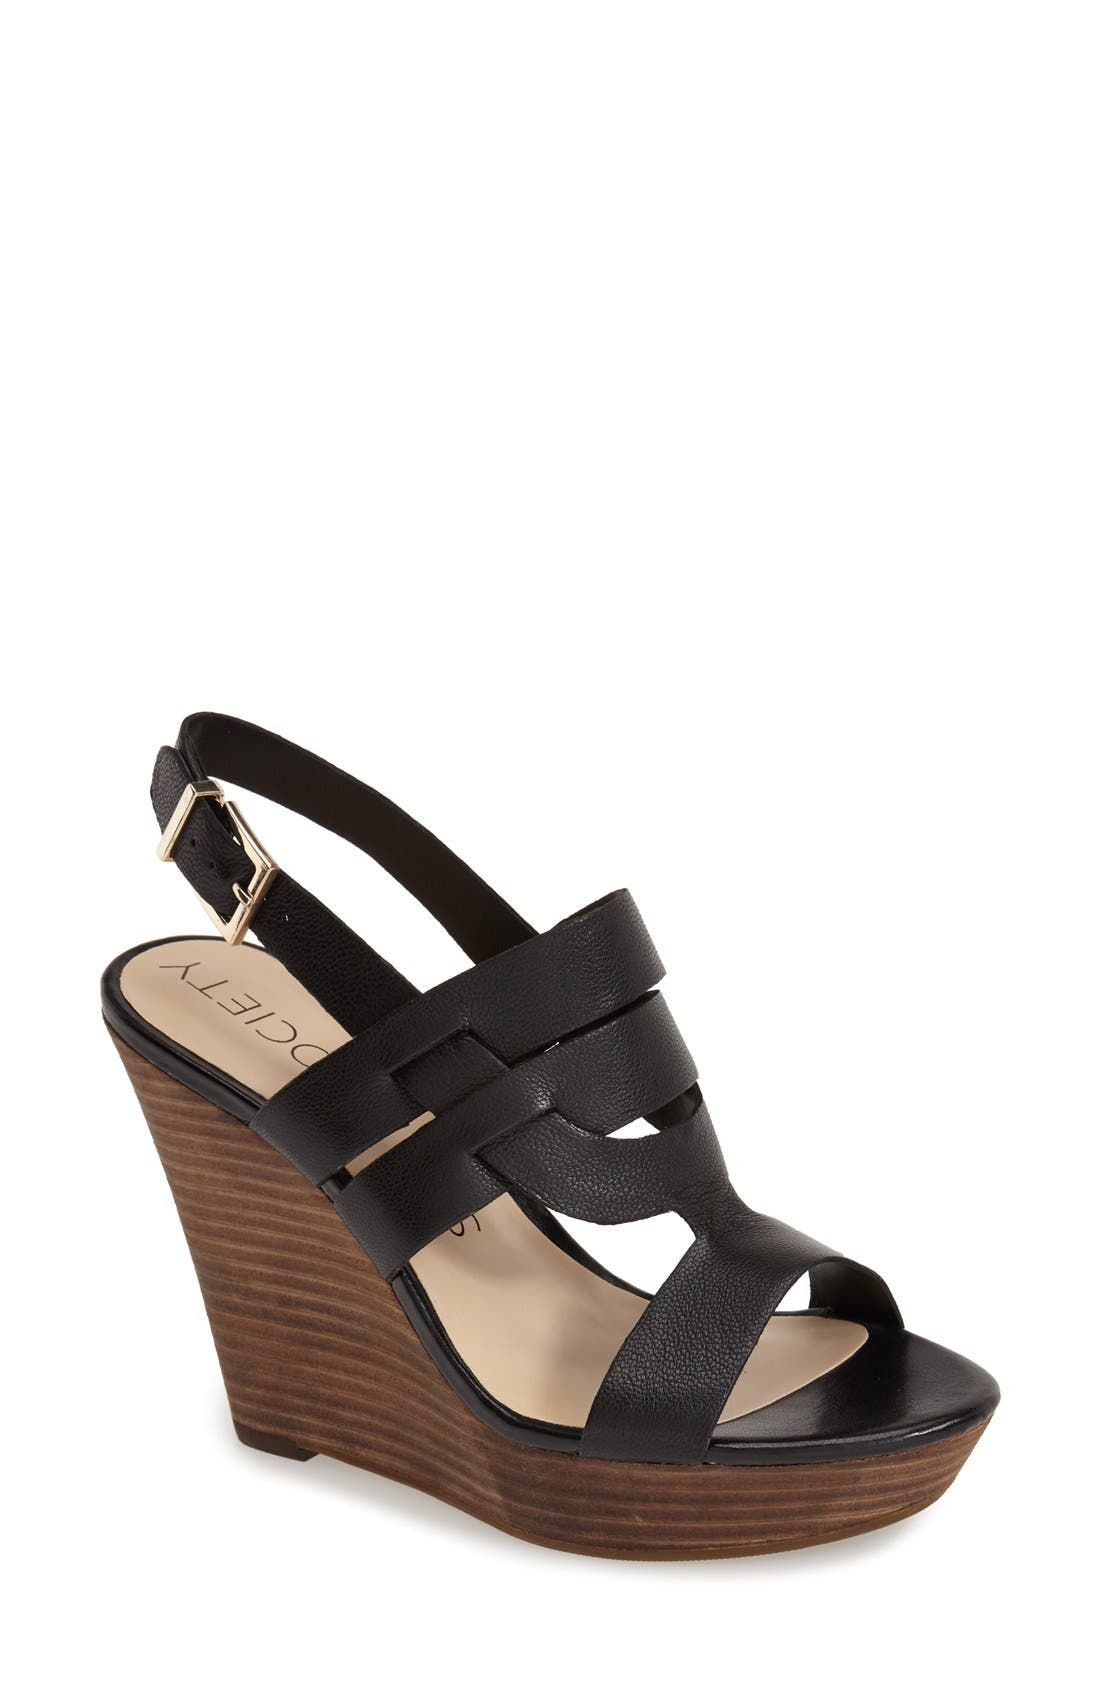 'Jenny' Slingback Wedge Sandal,                             Main thumbnail 1, color,                             001